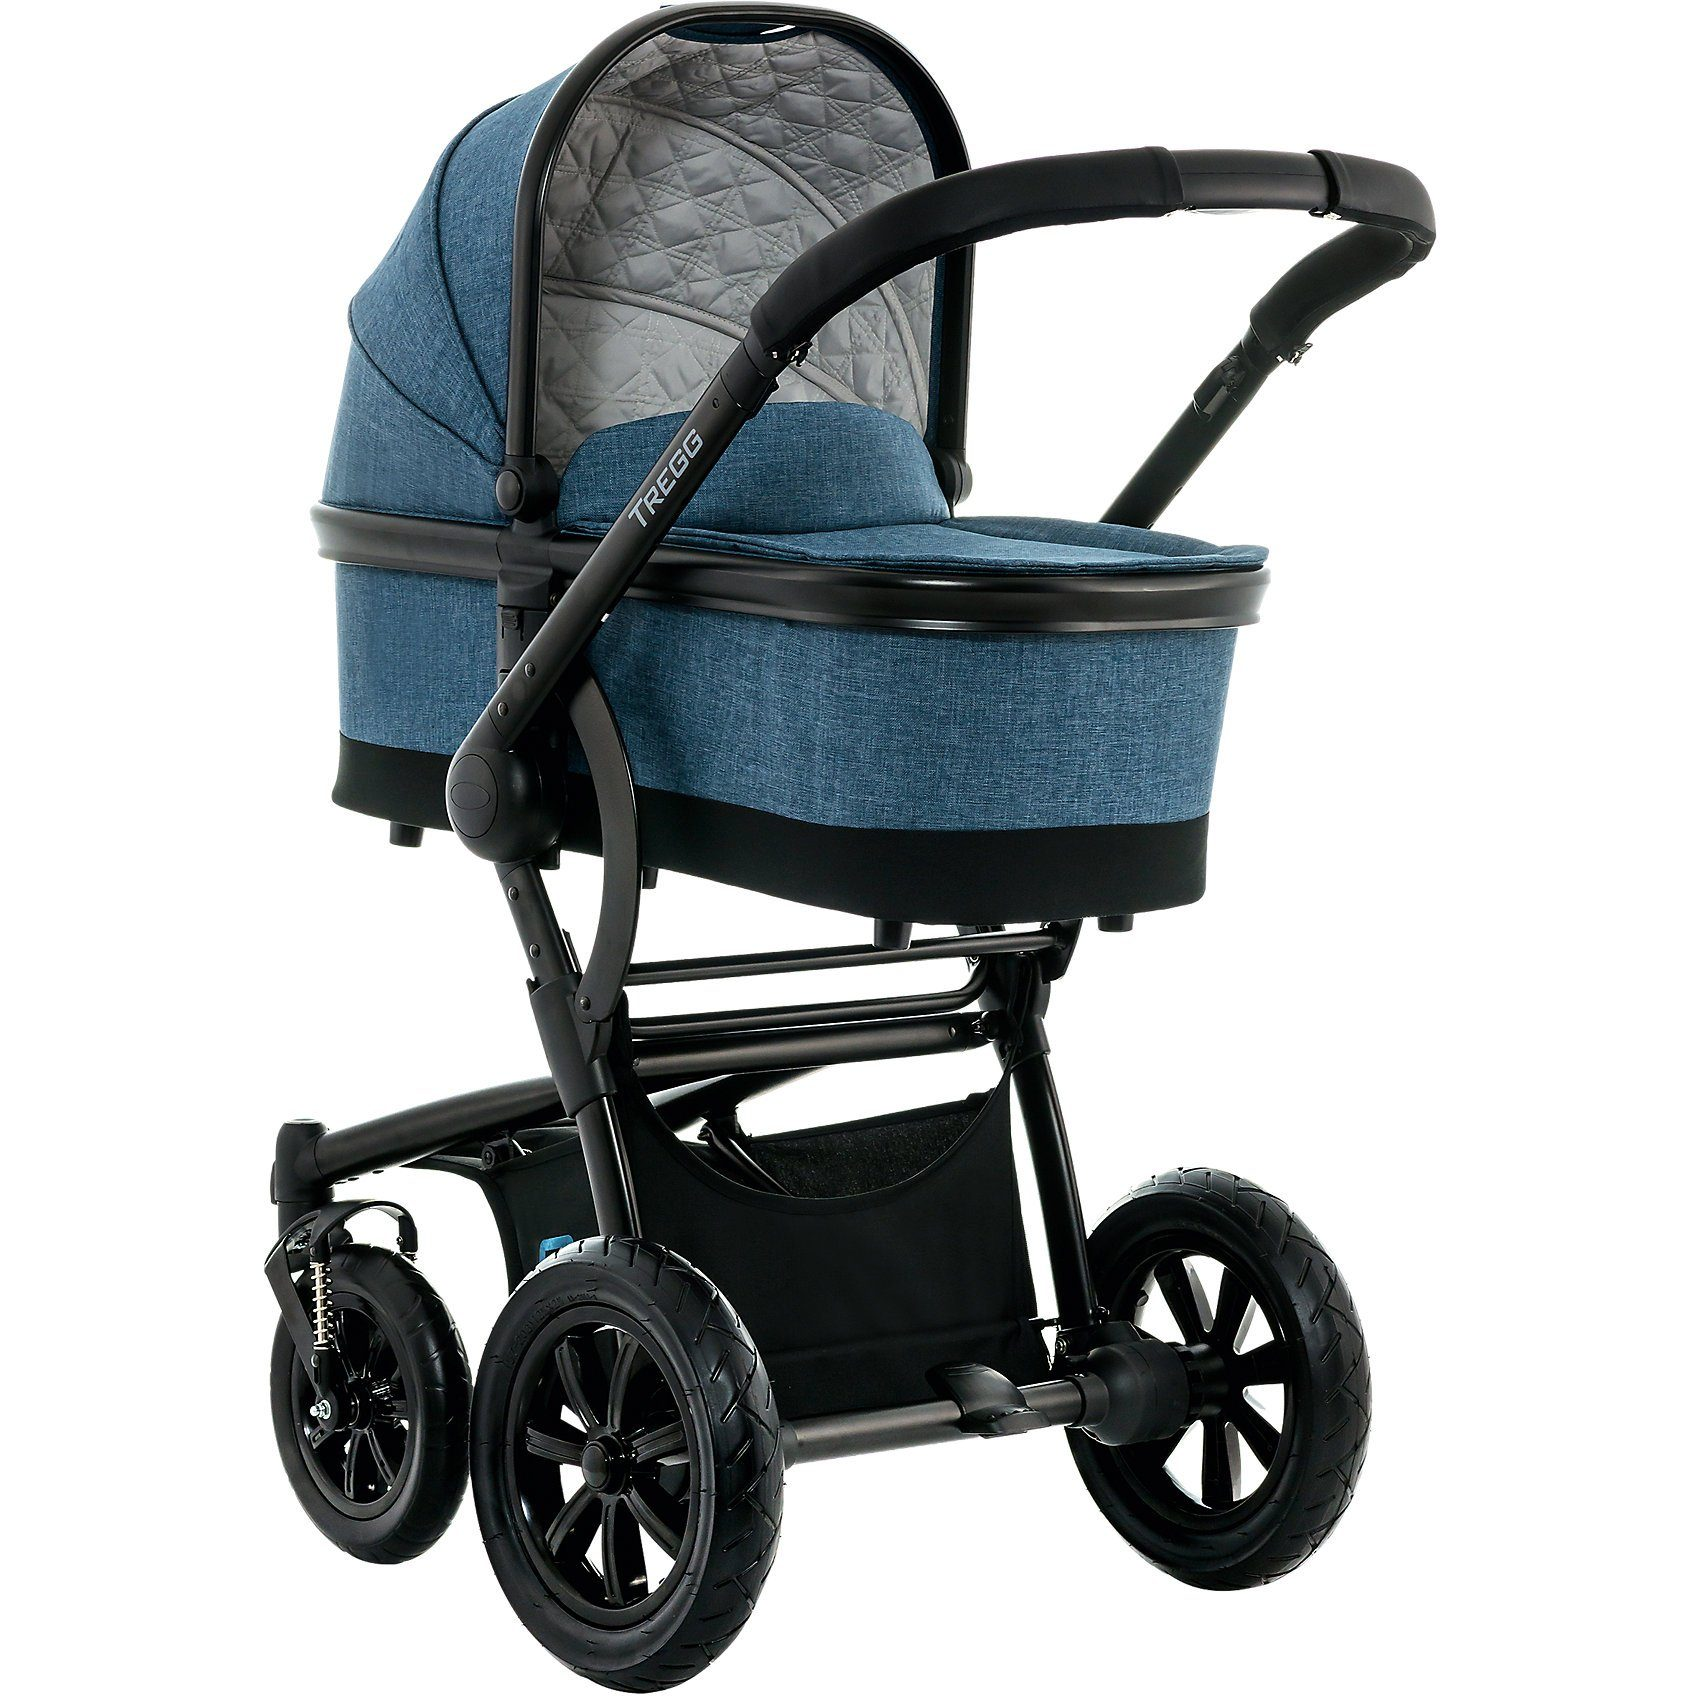 Moon Kombi Kinderwagen TREGG City, blue/melange